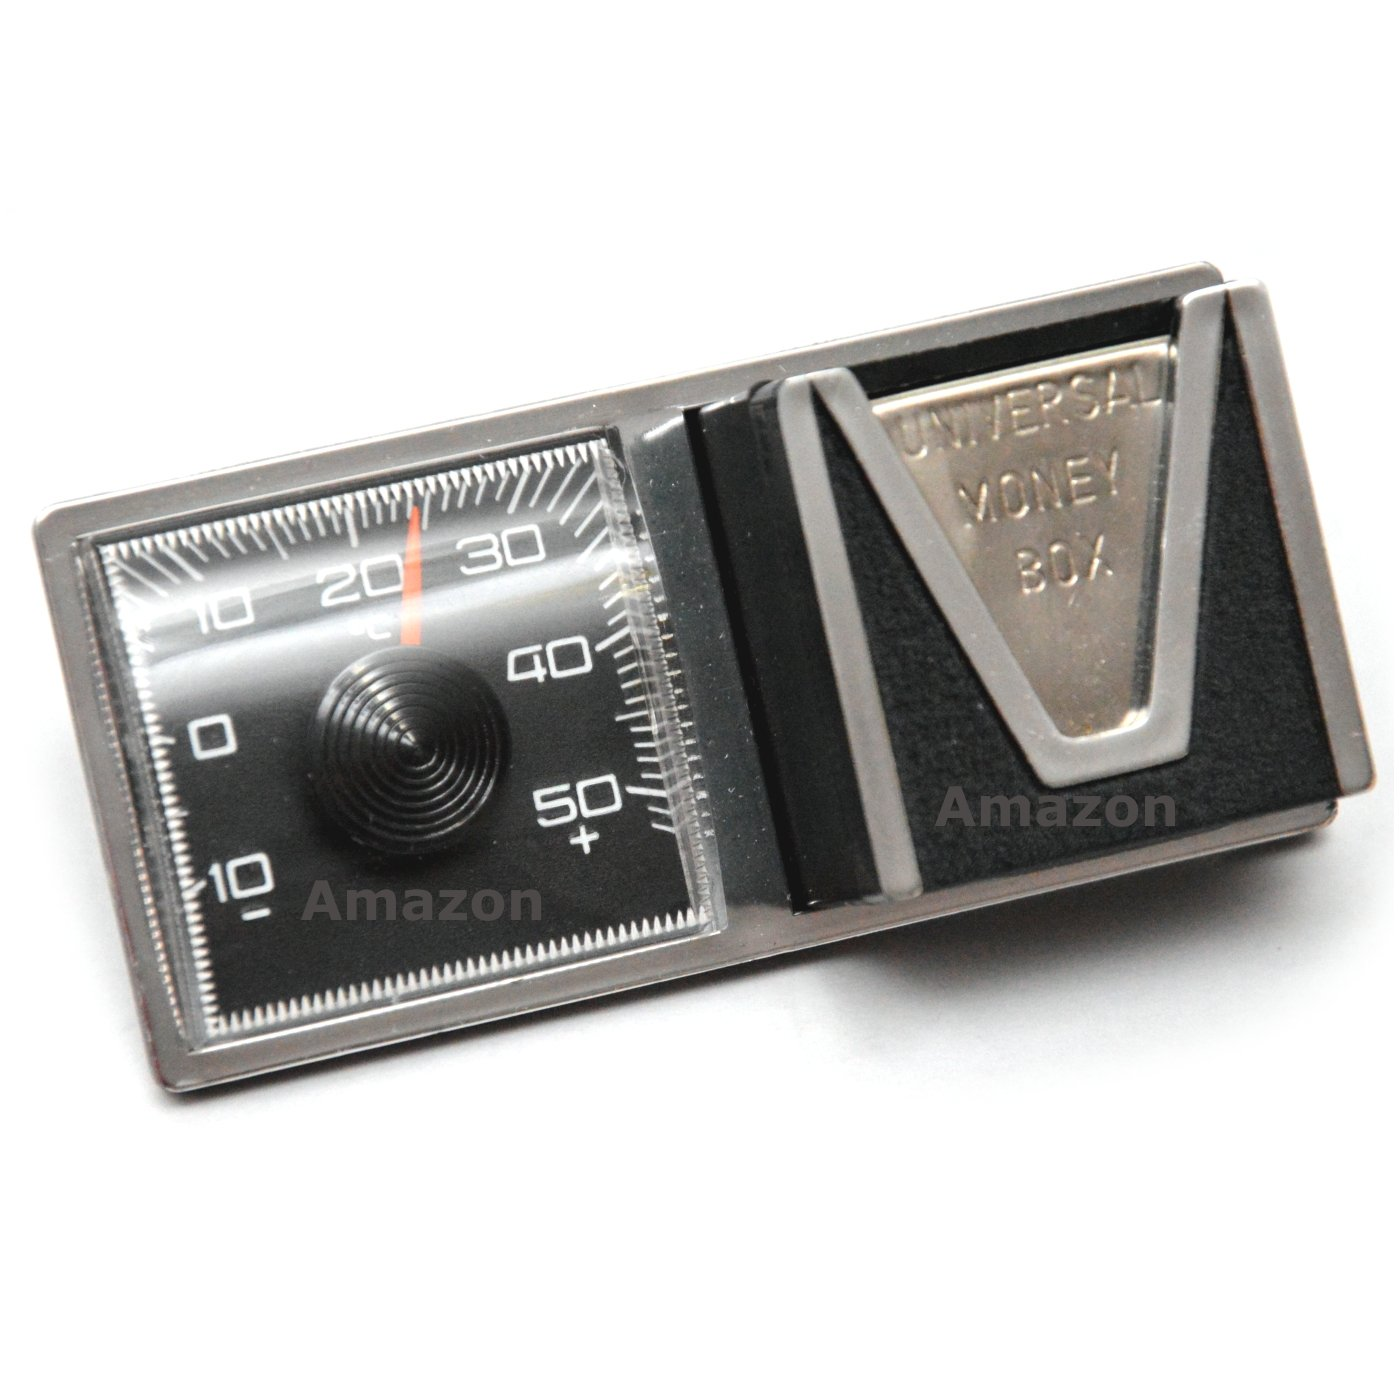 Historisches KFZ Thermometer Mü nzbox Kombi Instrument ca. 1969 RICHTER HR117